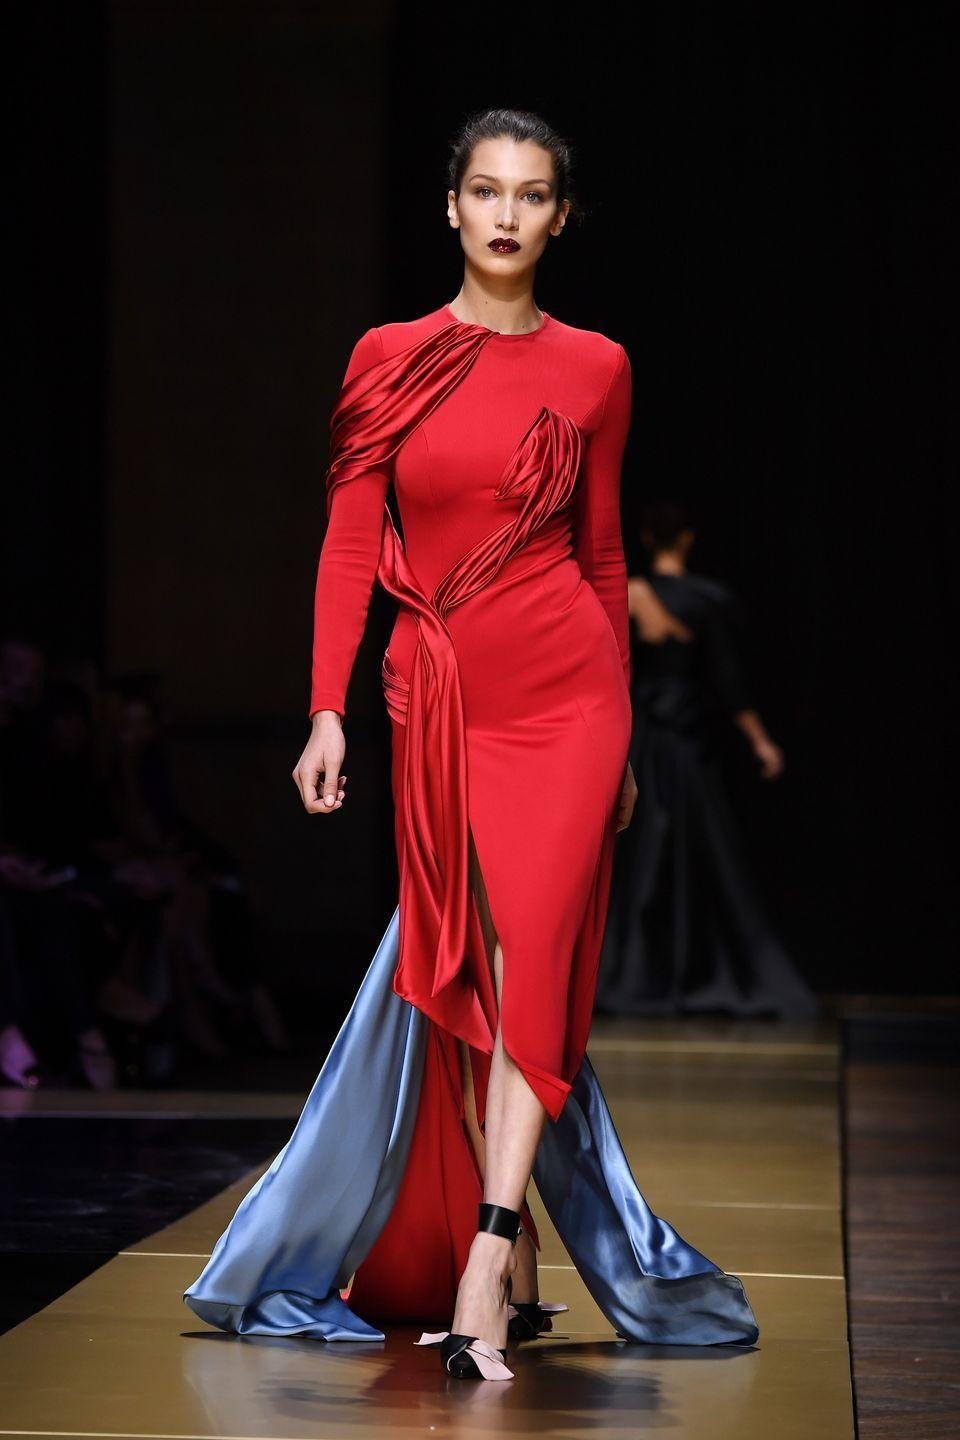 <p>Although Bella originally moved to New York City to study photography at Parsons School of Design, she ended up dropping out after one term when her modeling career began to skyrocket. She was signed on to IMG and made her New York Fashion Week debut in 2014.</p>